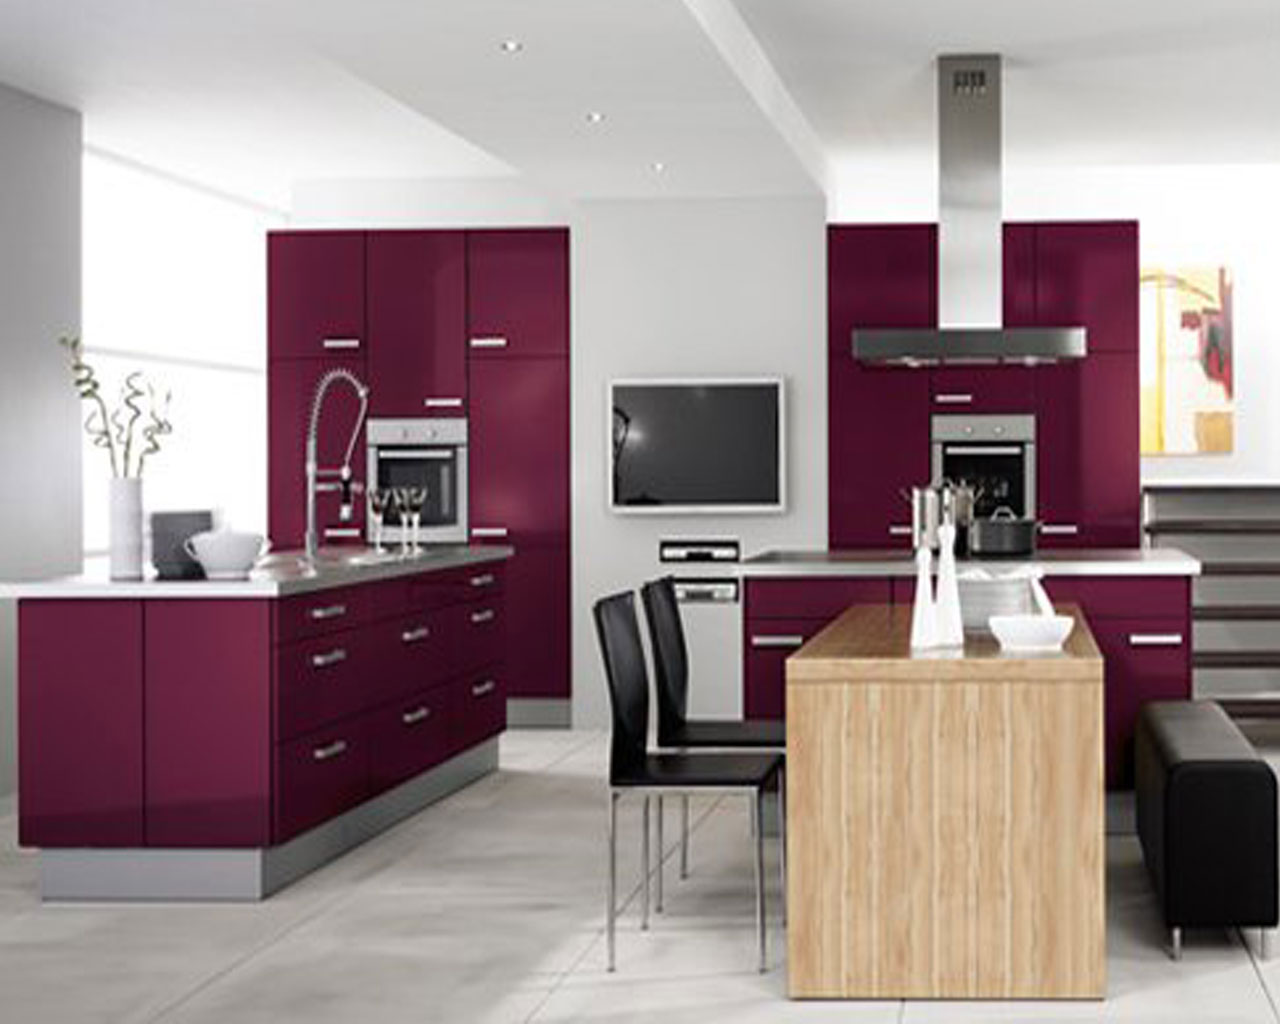 Furniture design Modern kitchen design ideas